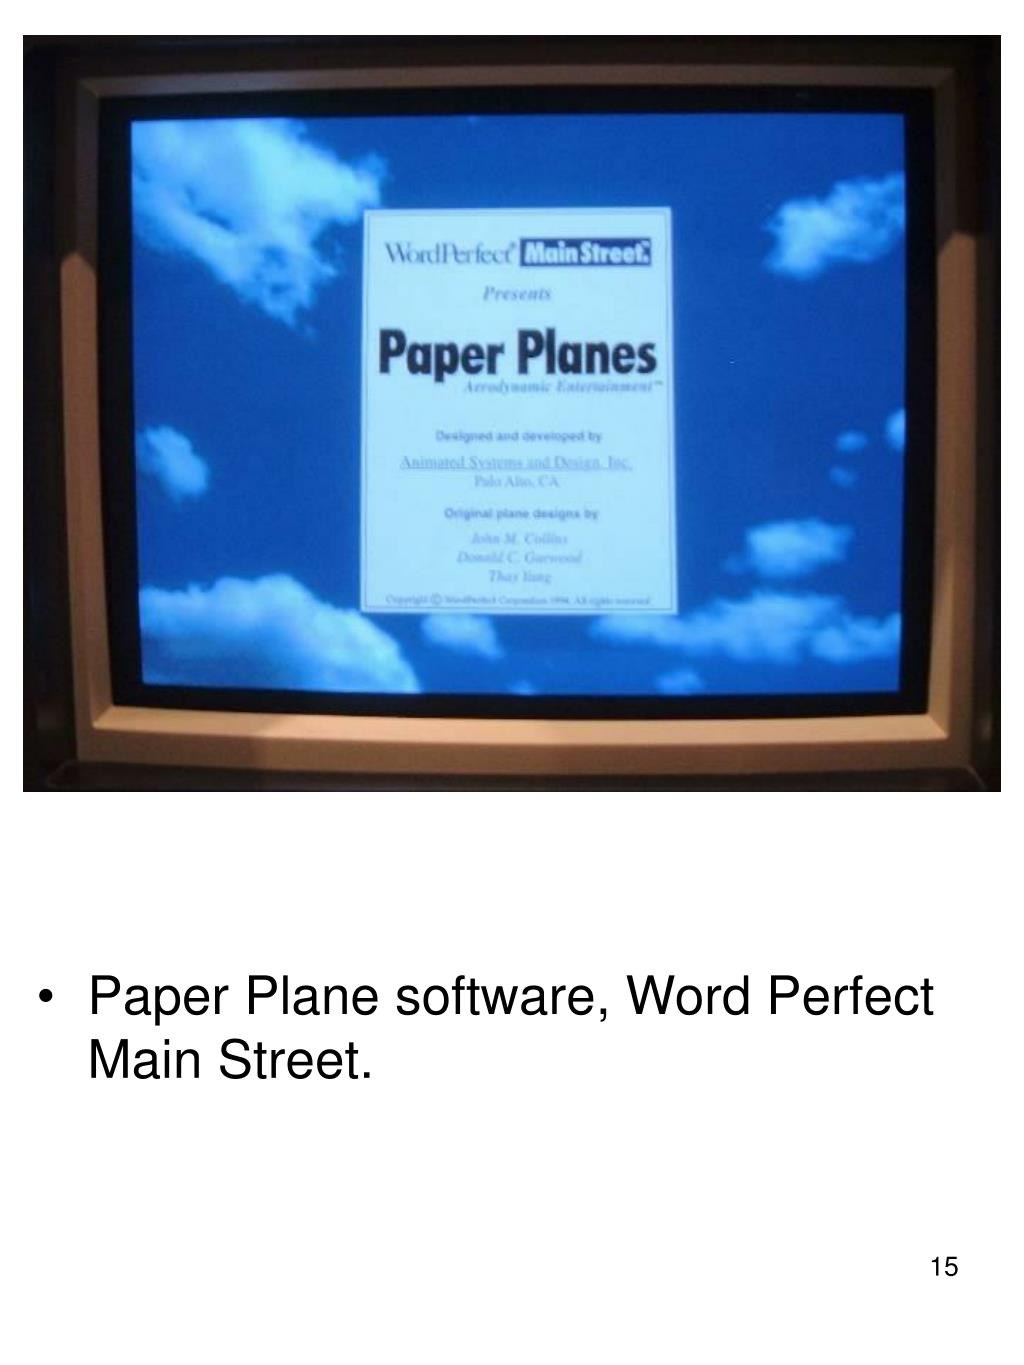 Paper Plane software, Word Perfect Main Street.